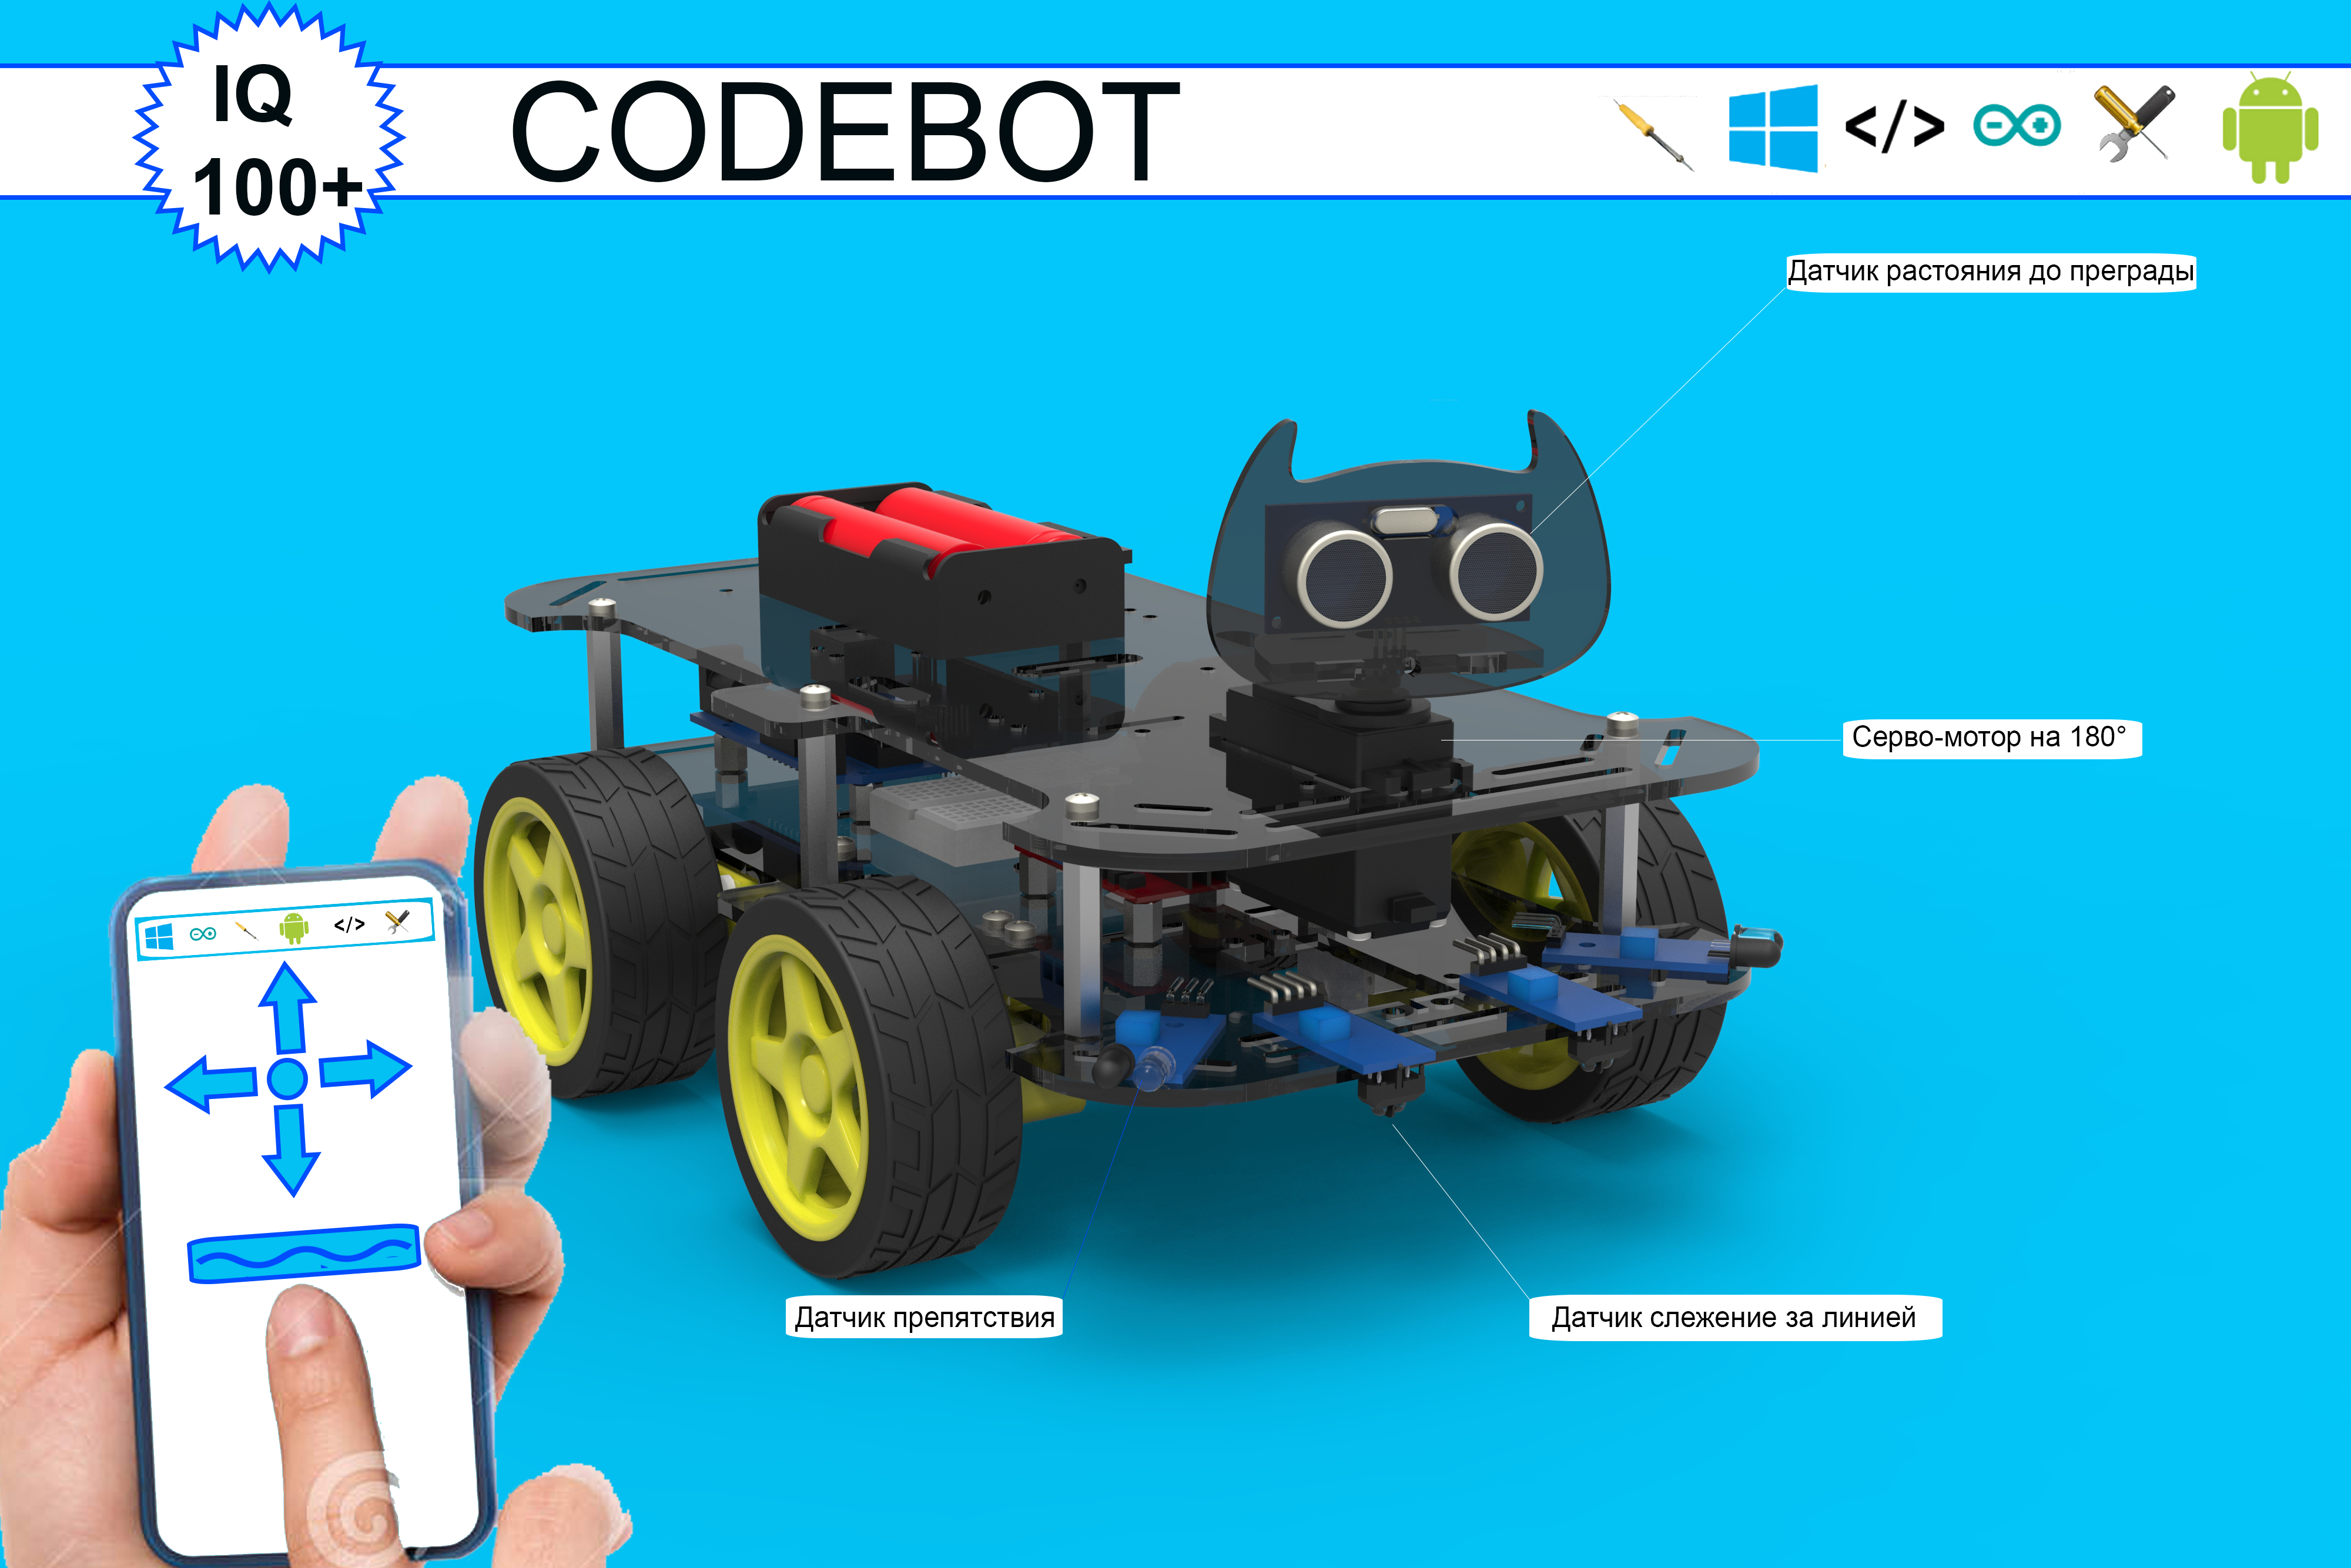 Arduino robot kit CODEBOT